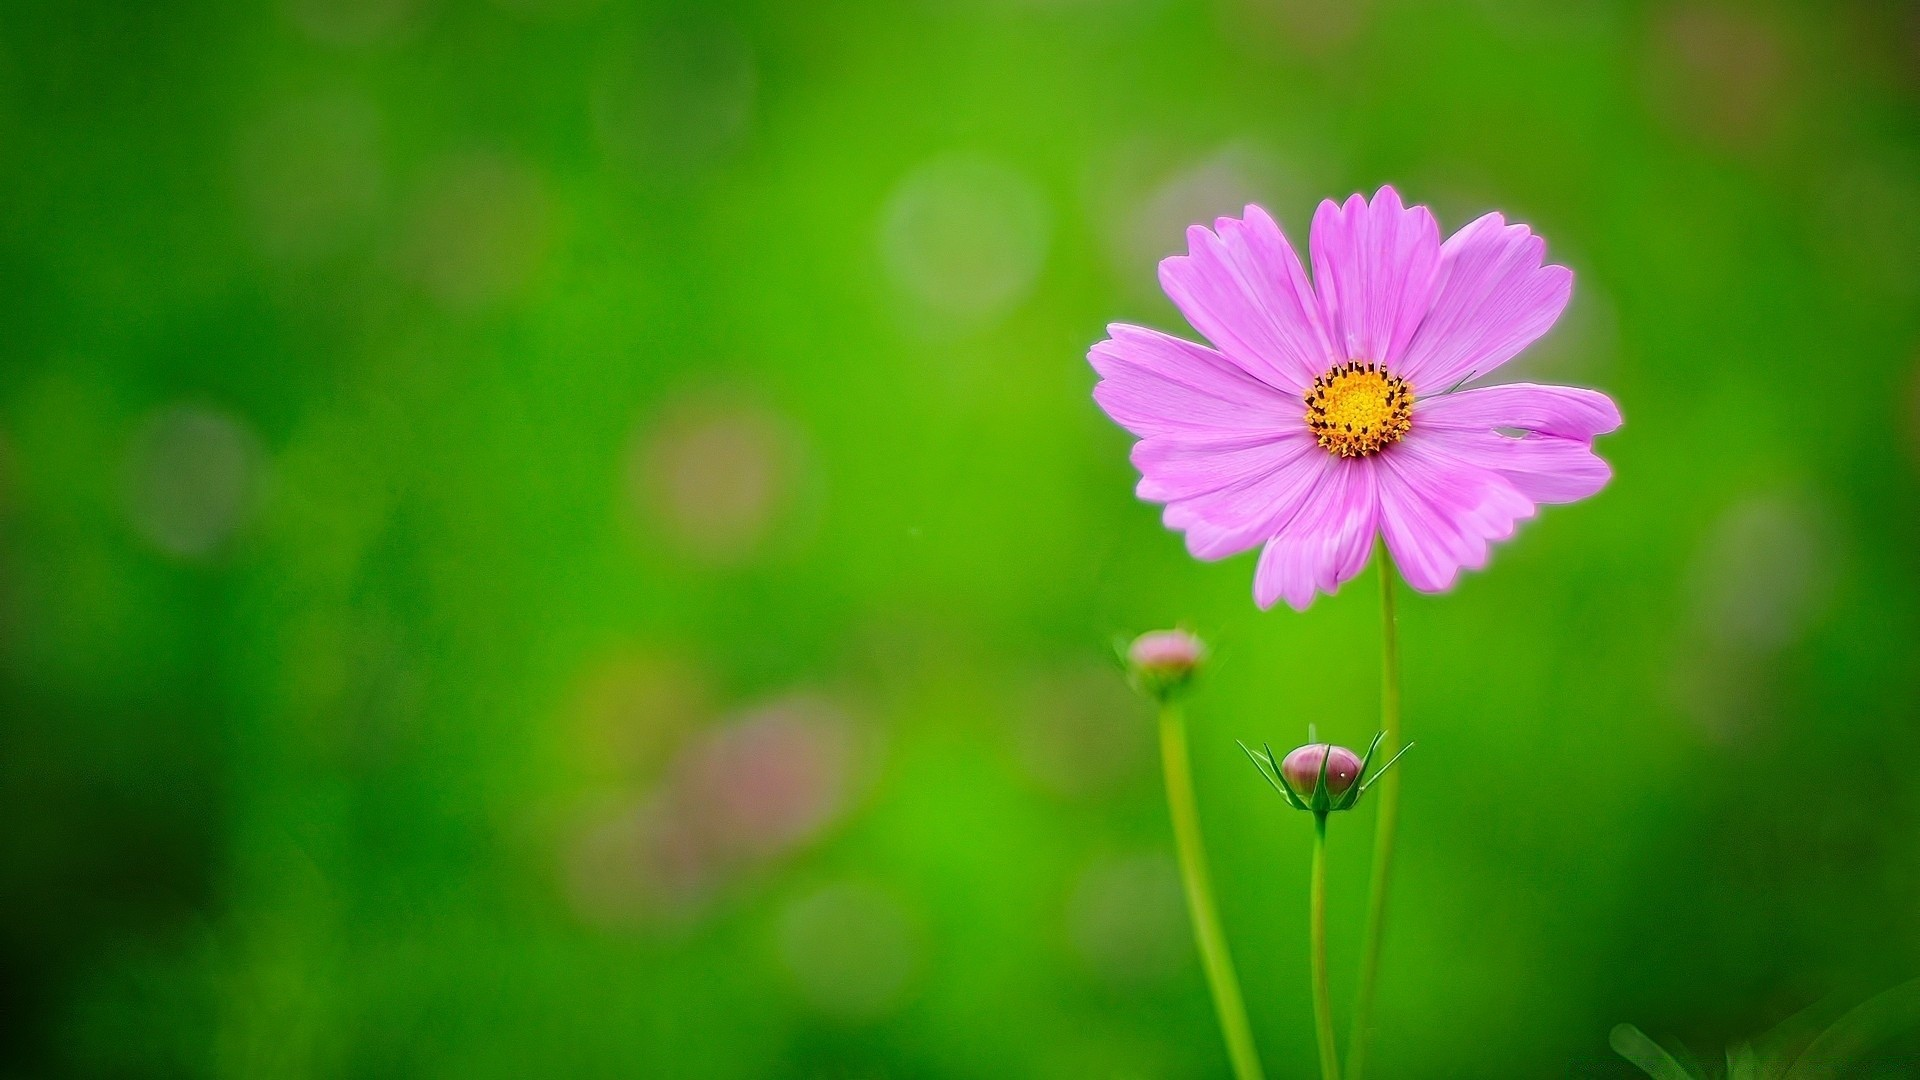 Pink flower green background android wallpapers for free mightylinksfo